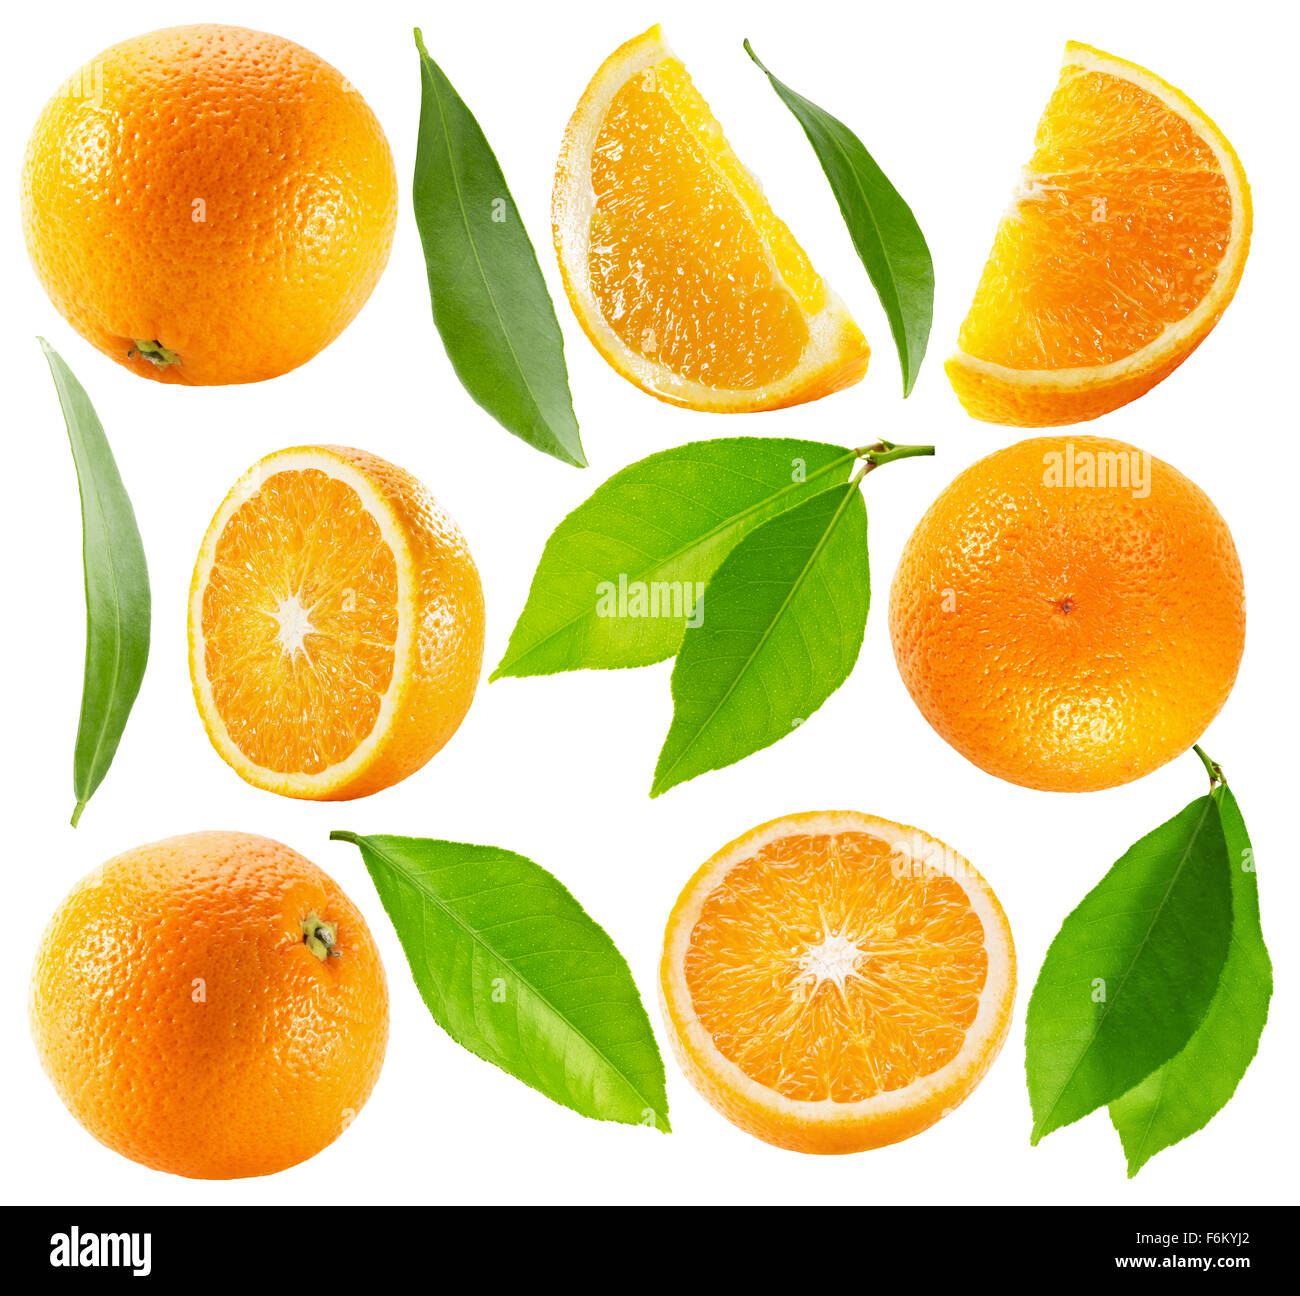 collection of oranges with leaves isolated on the white background. - Stock Image